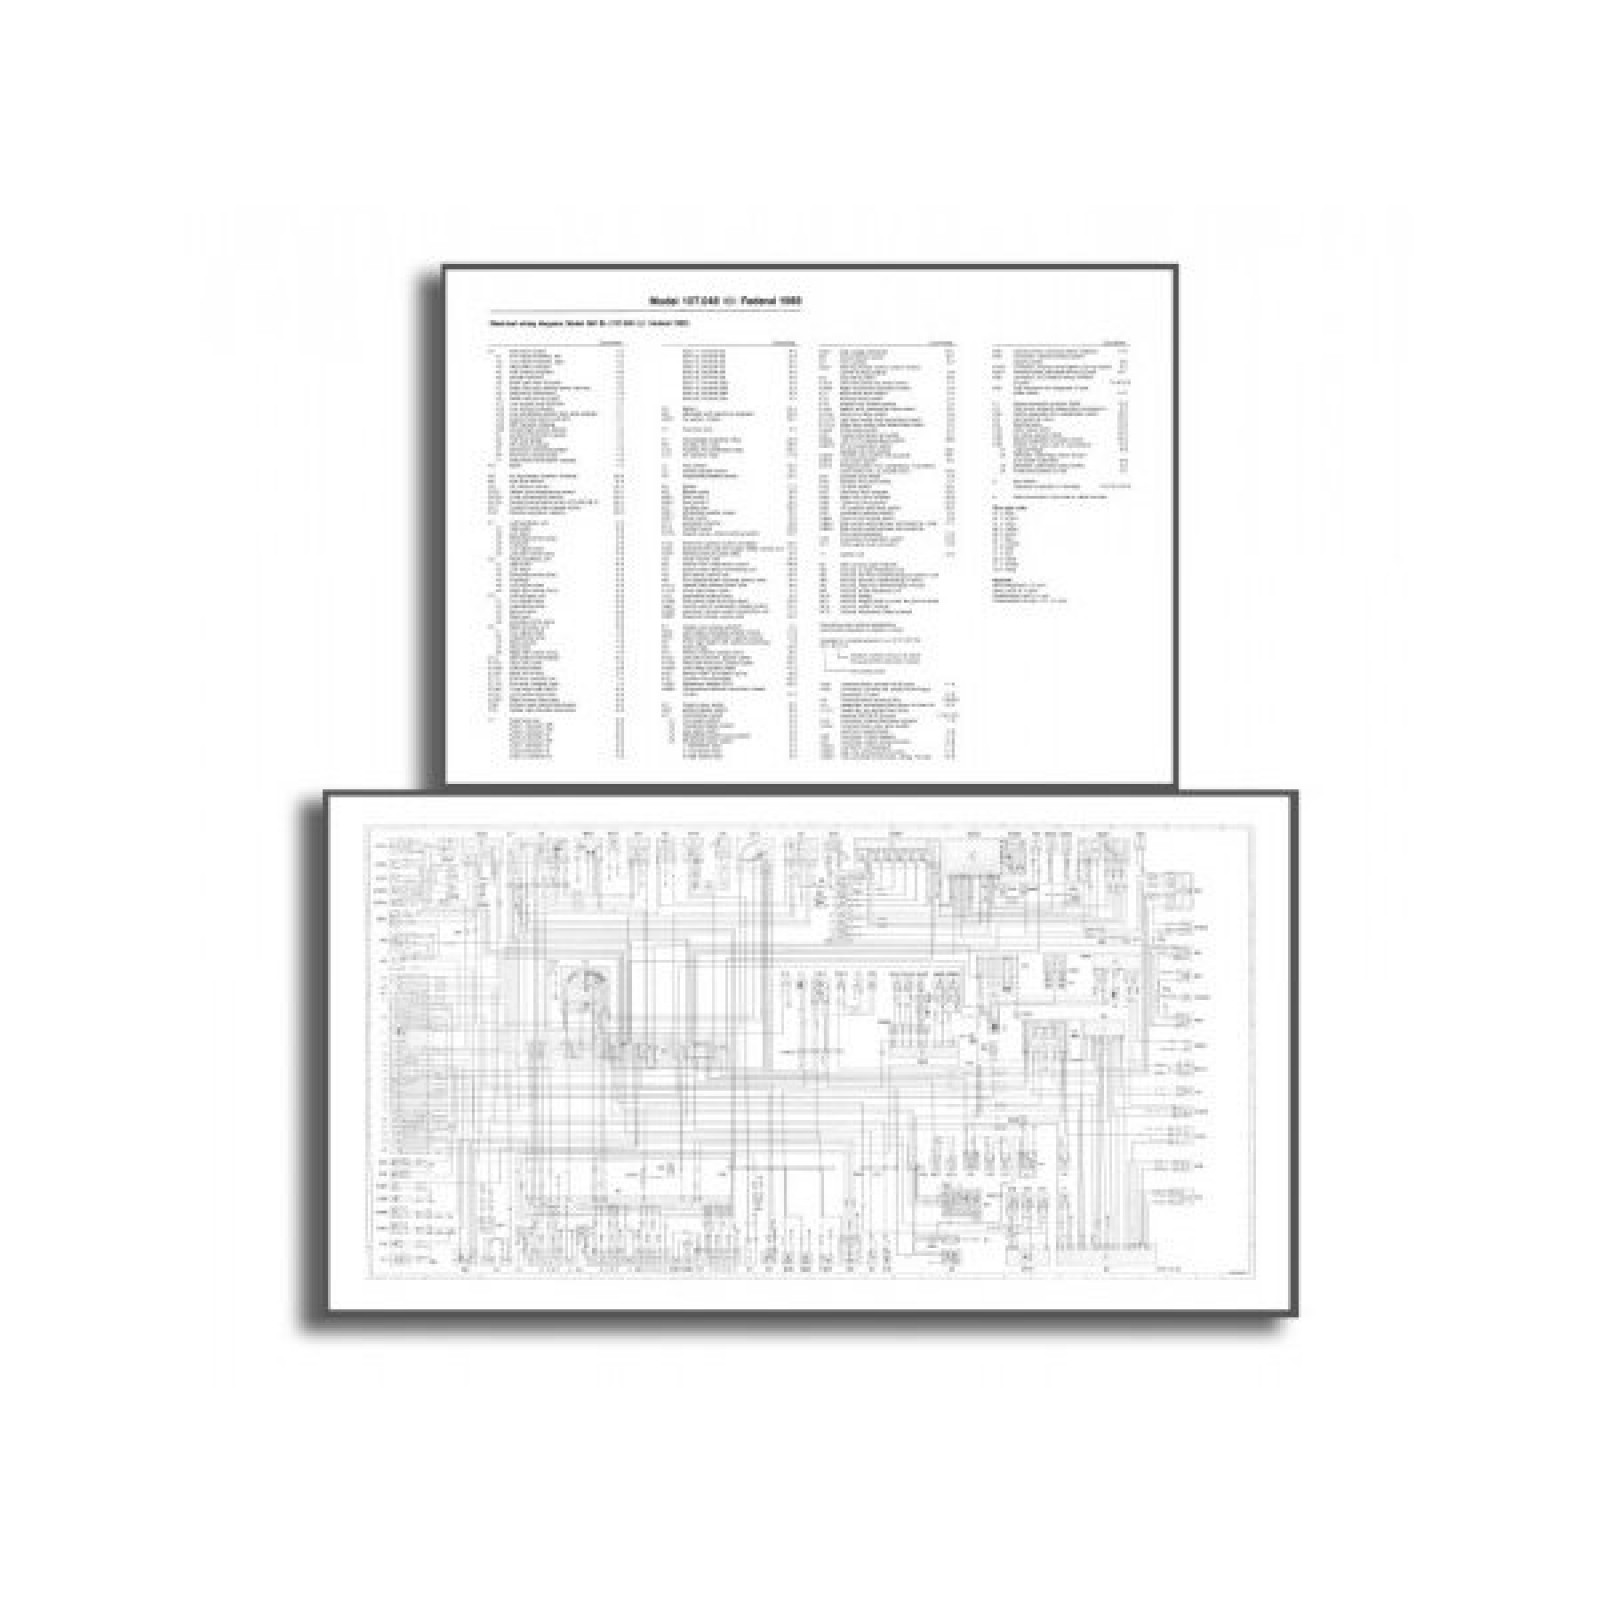 [DIAGRAM] 2000 Mercedes Wiring Diagram FULL Version HD